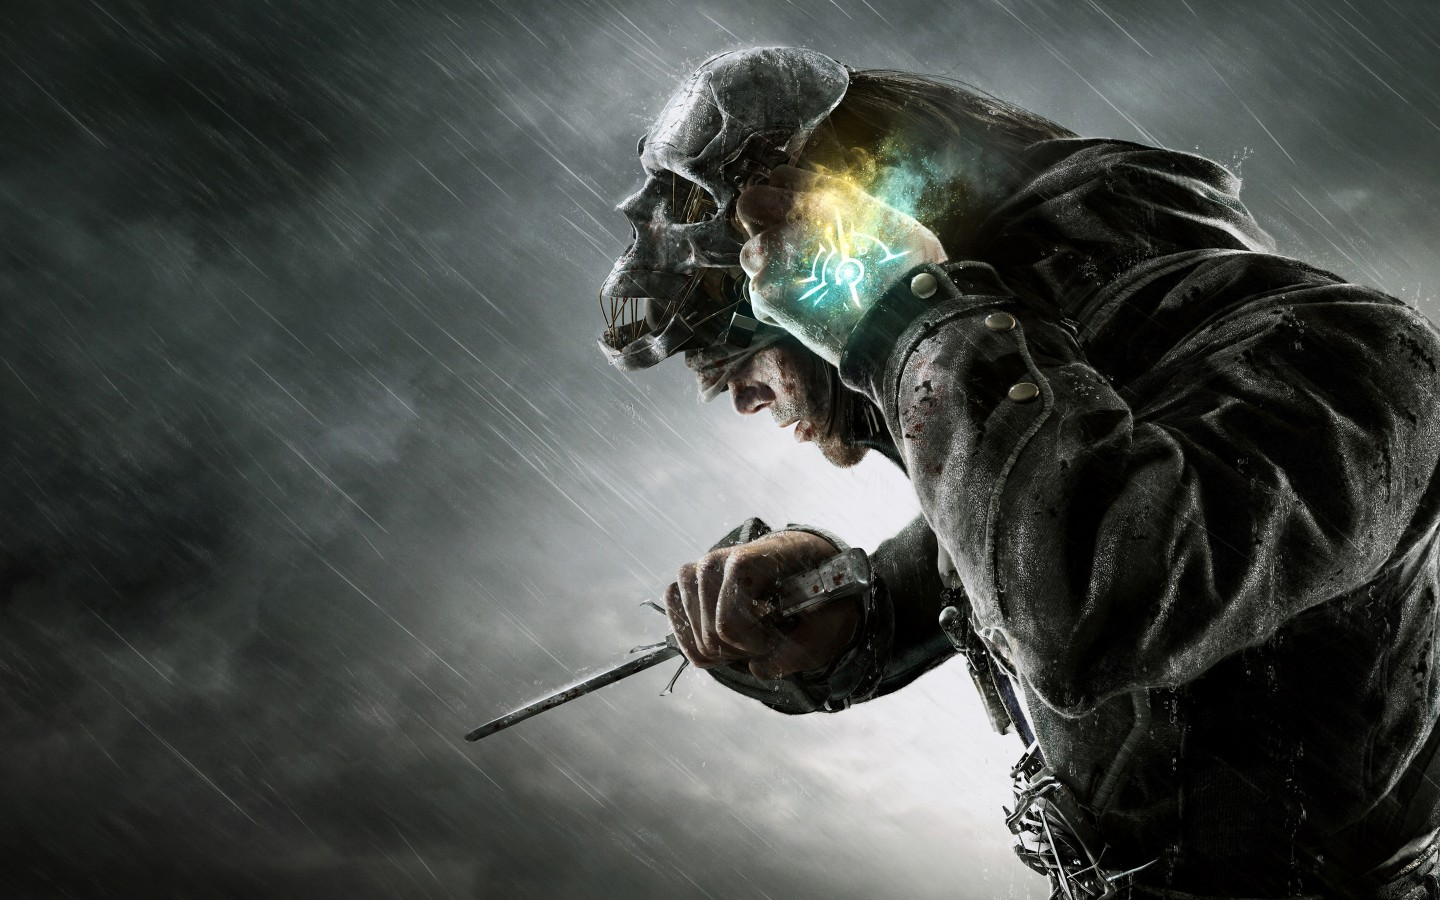 Apple Live Wallpaper Iphone 6 Dishonored Game Wallpapers Hd Wallpapers Id 11527